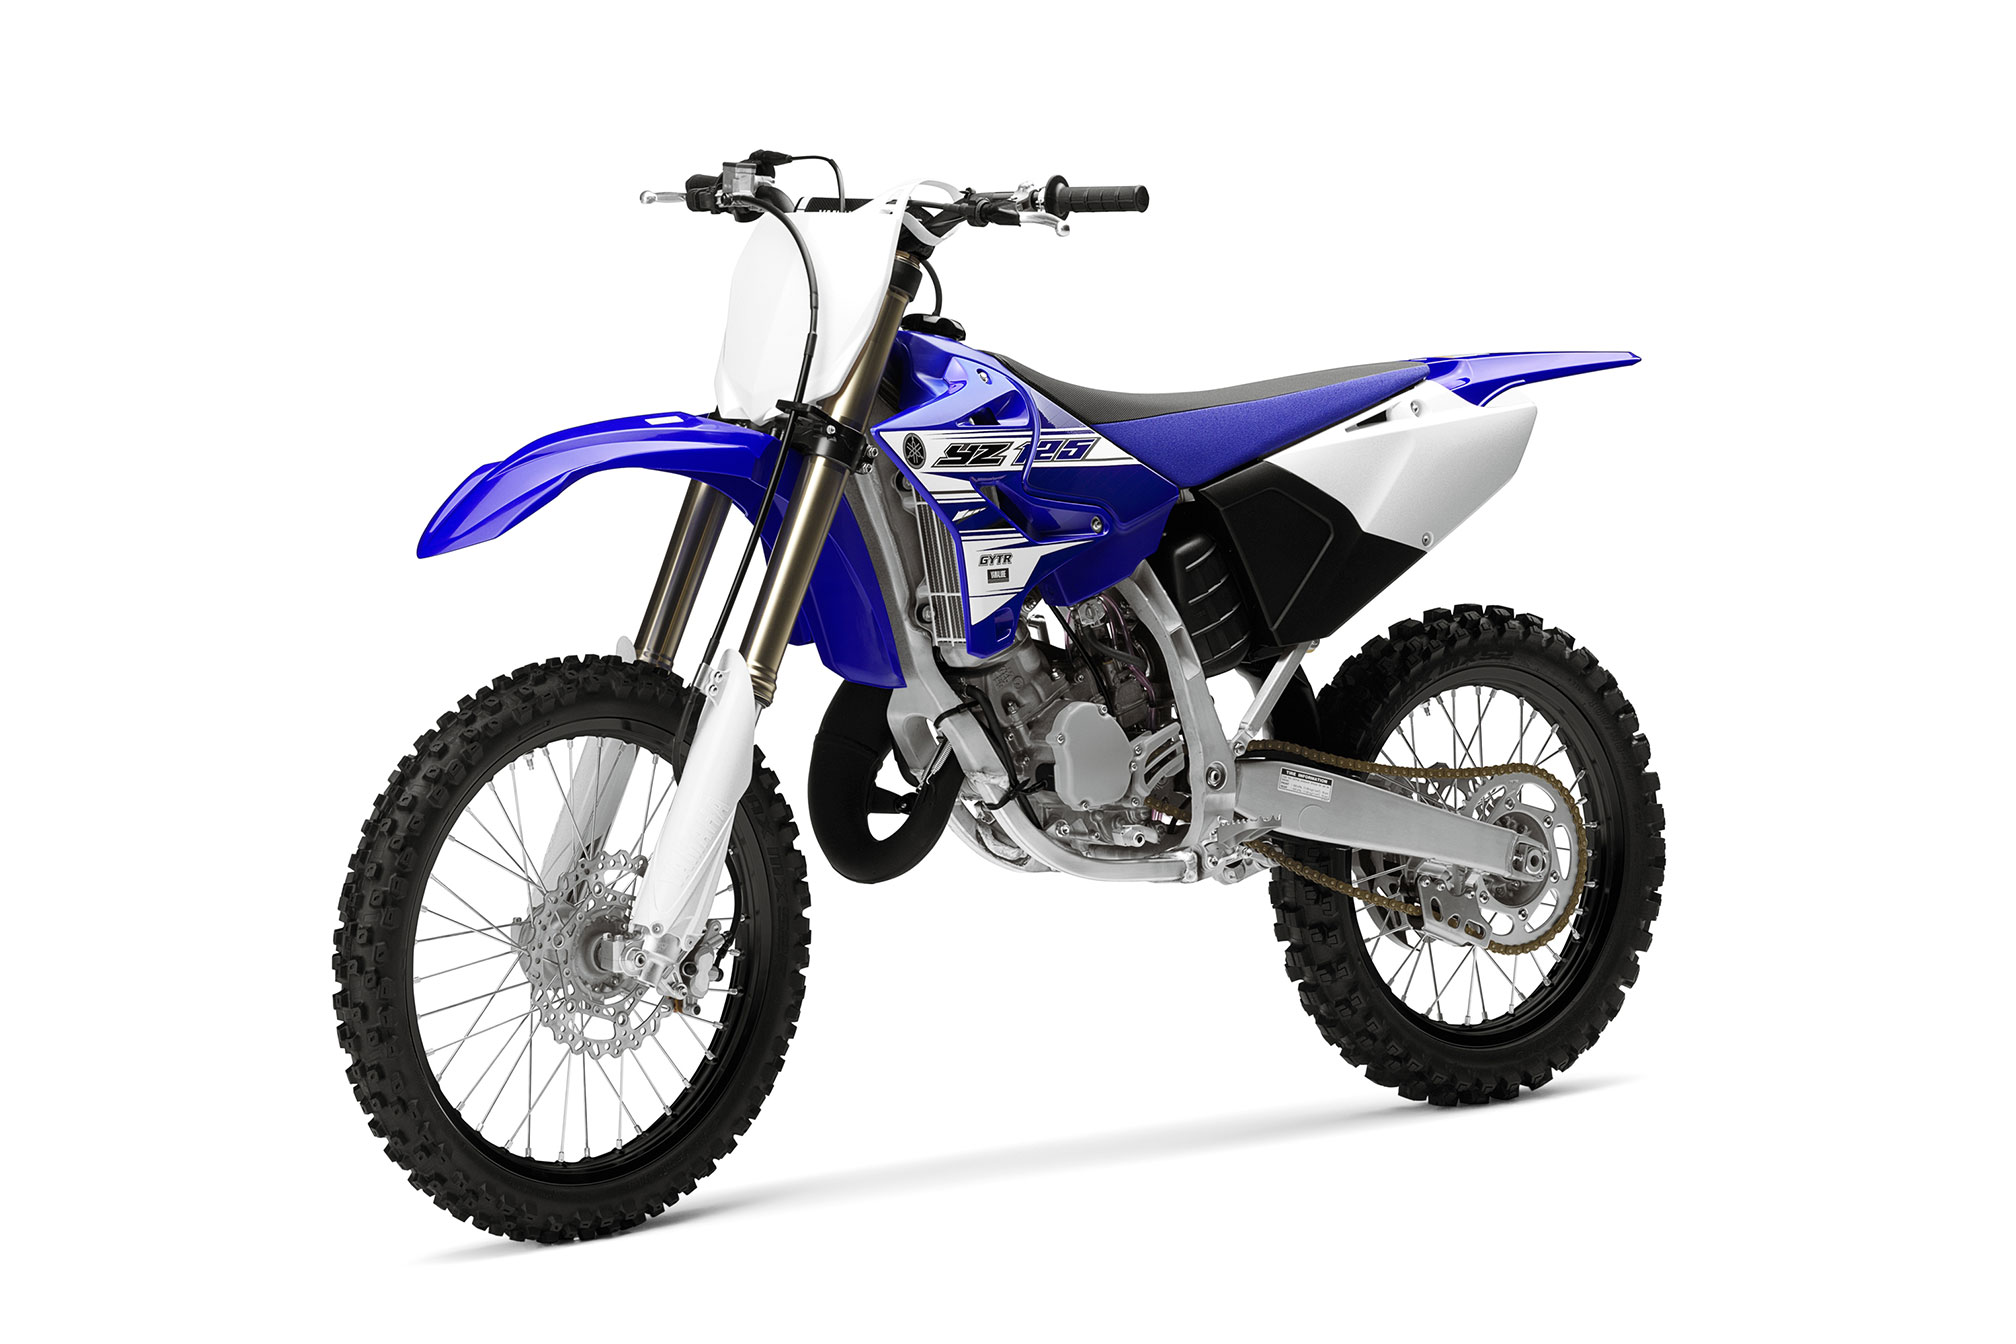 2016 yamaha yz125 review